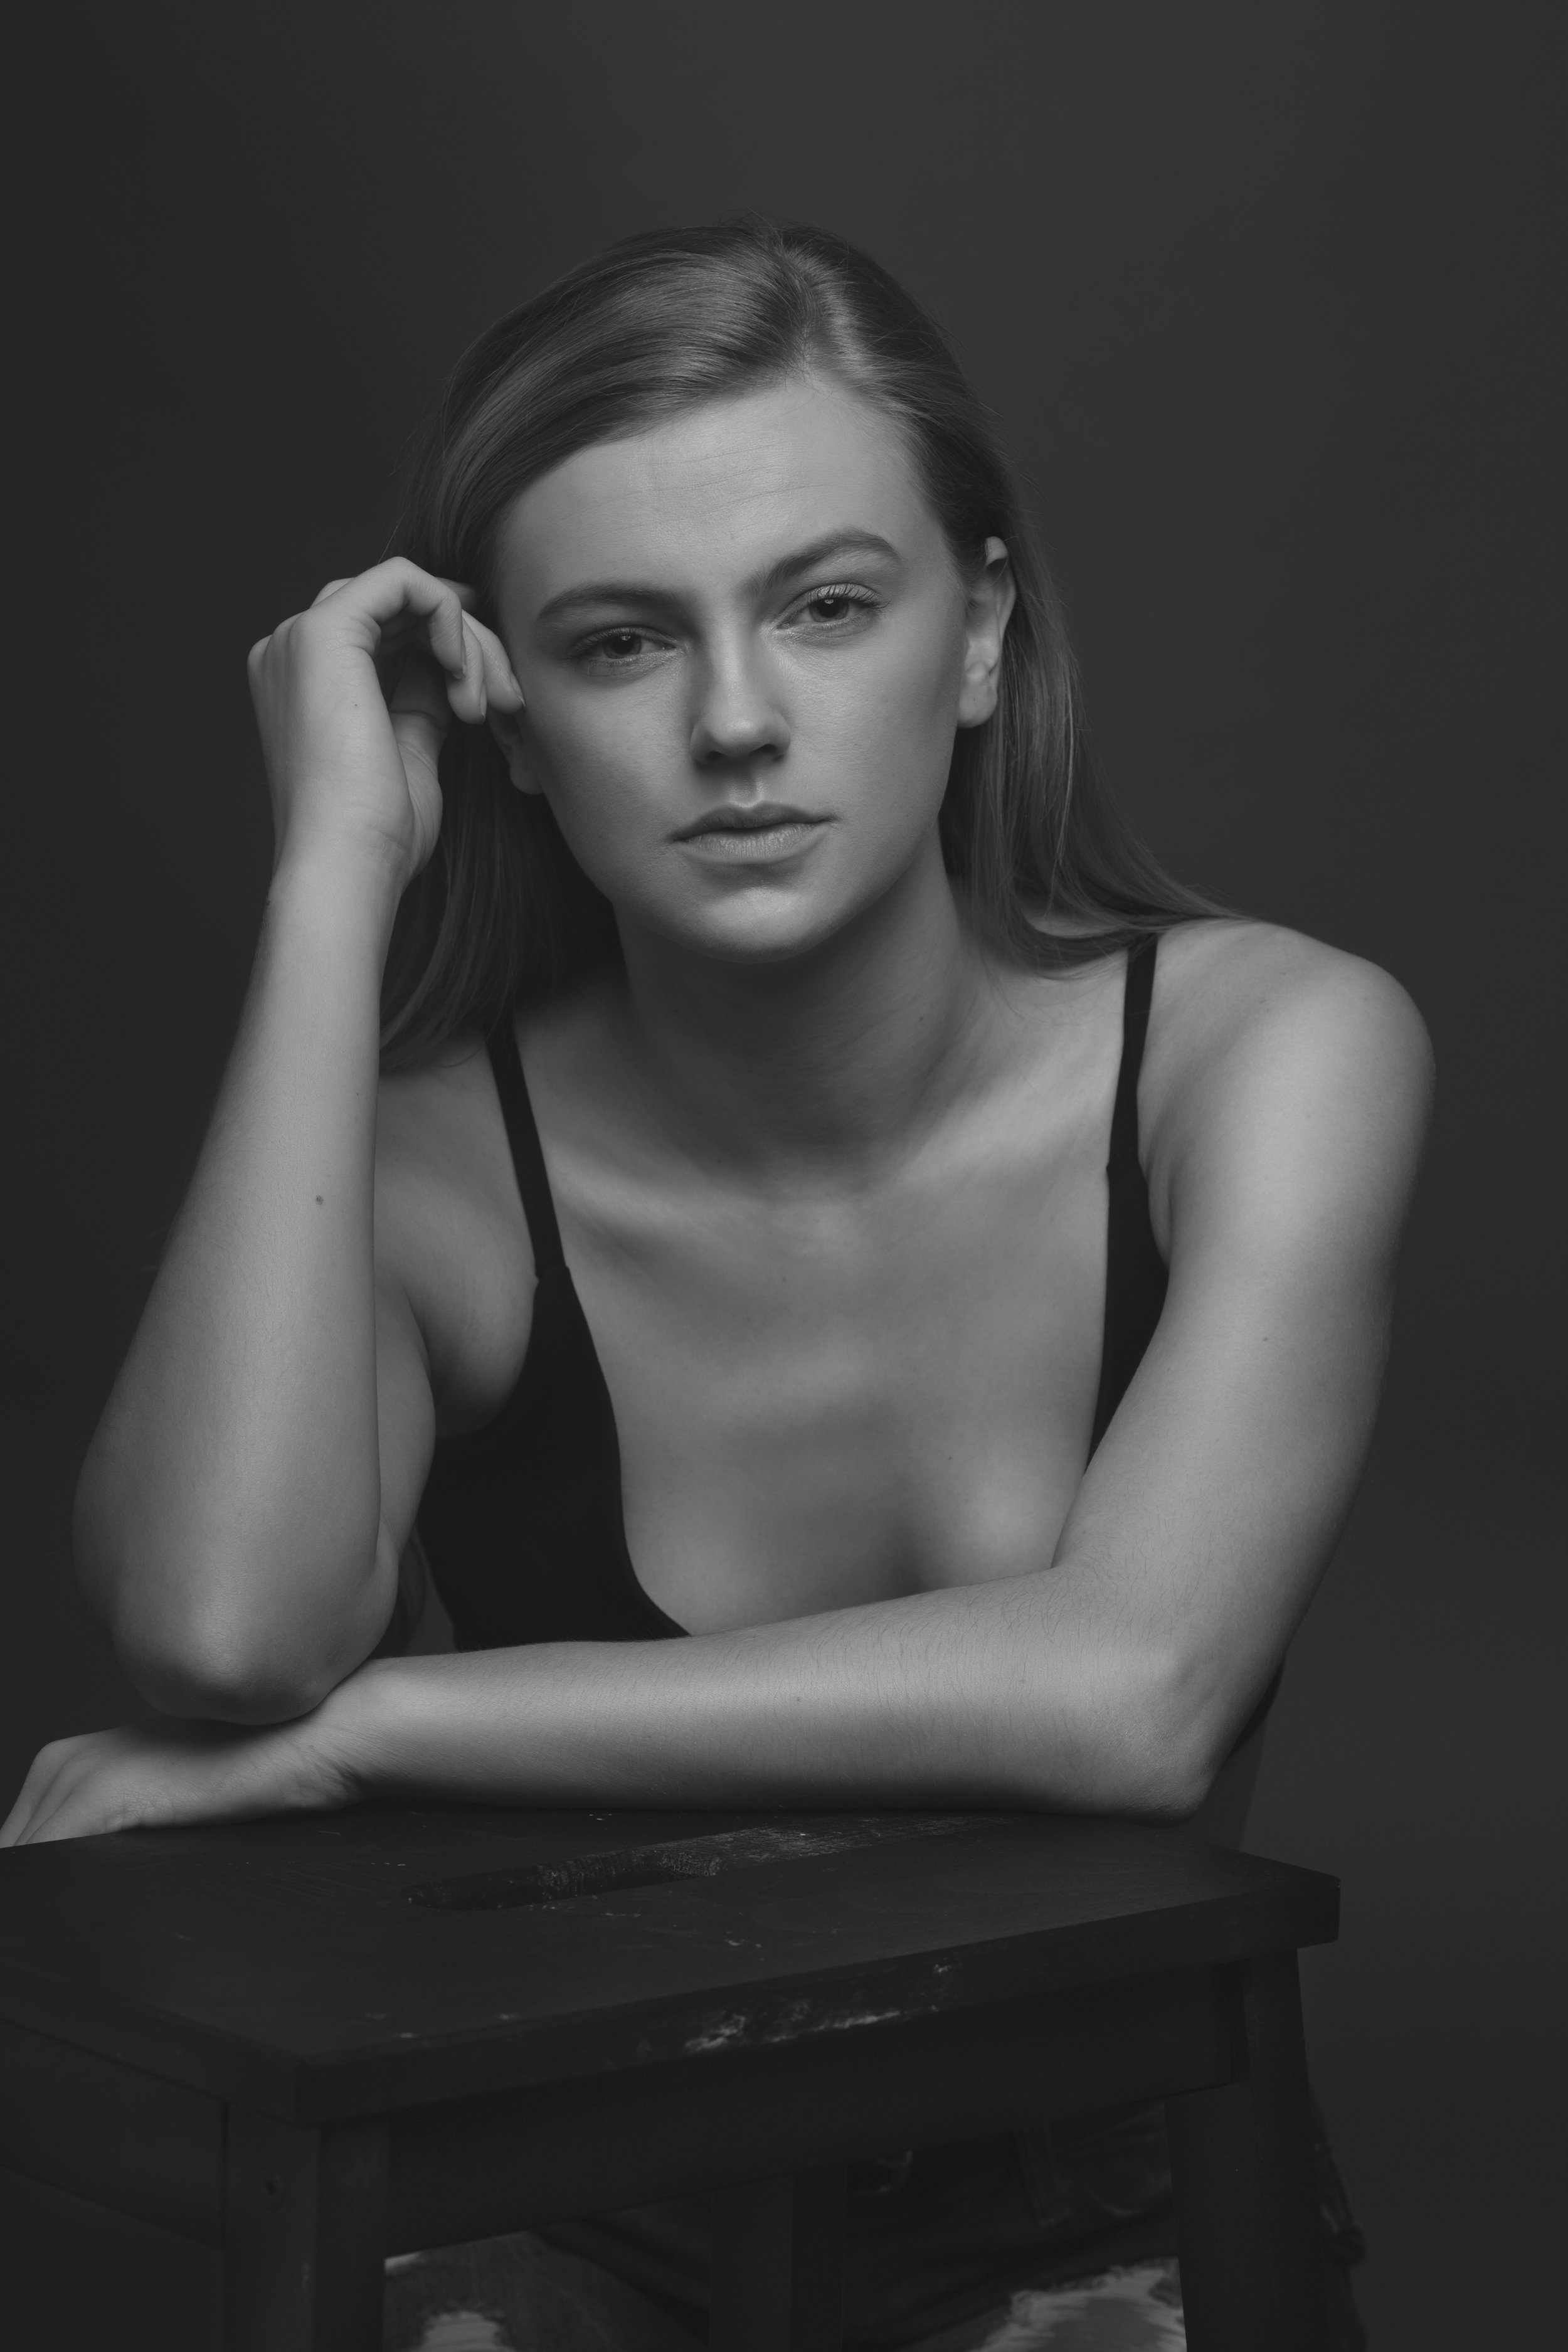 Beautiful soft and feminine portrait of Gabriella to get us started.